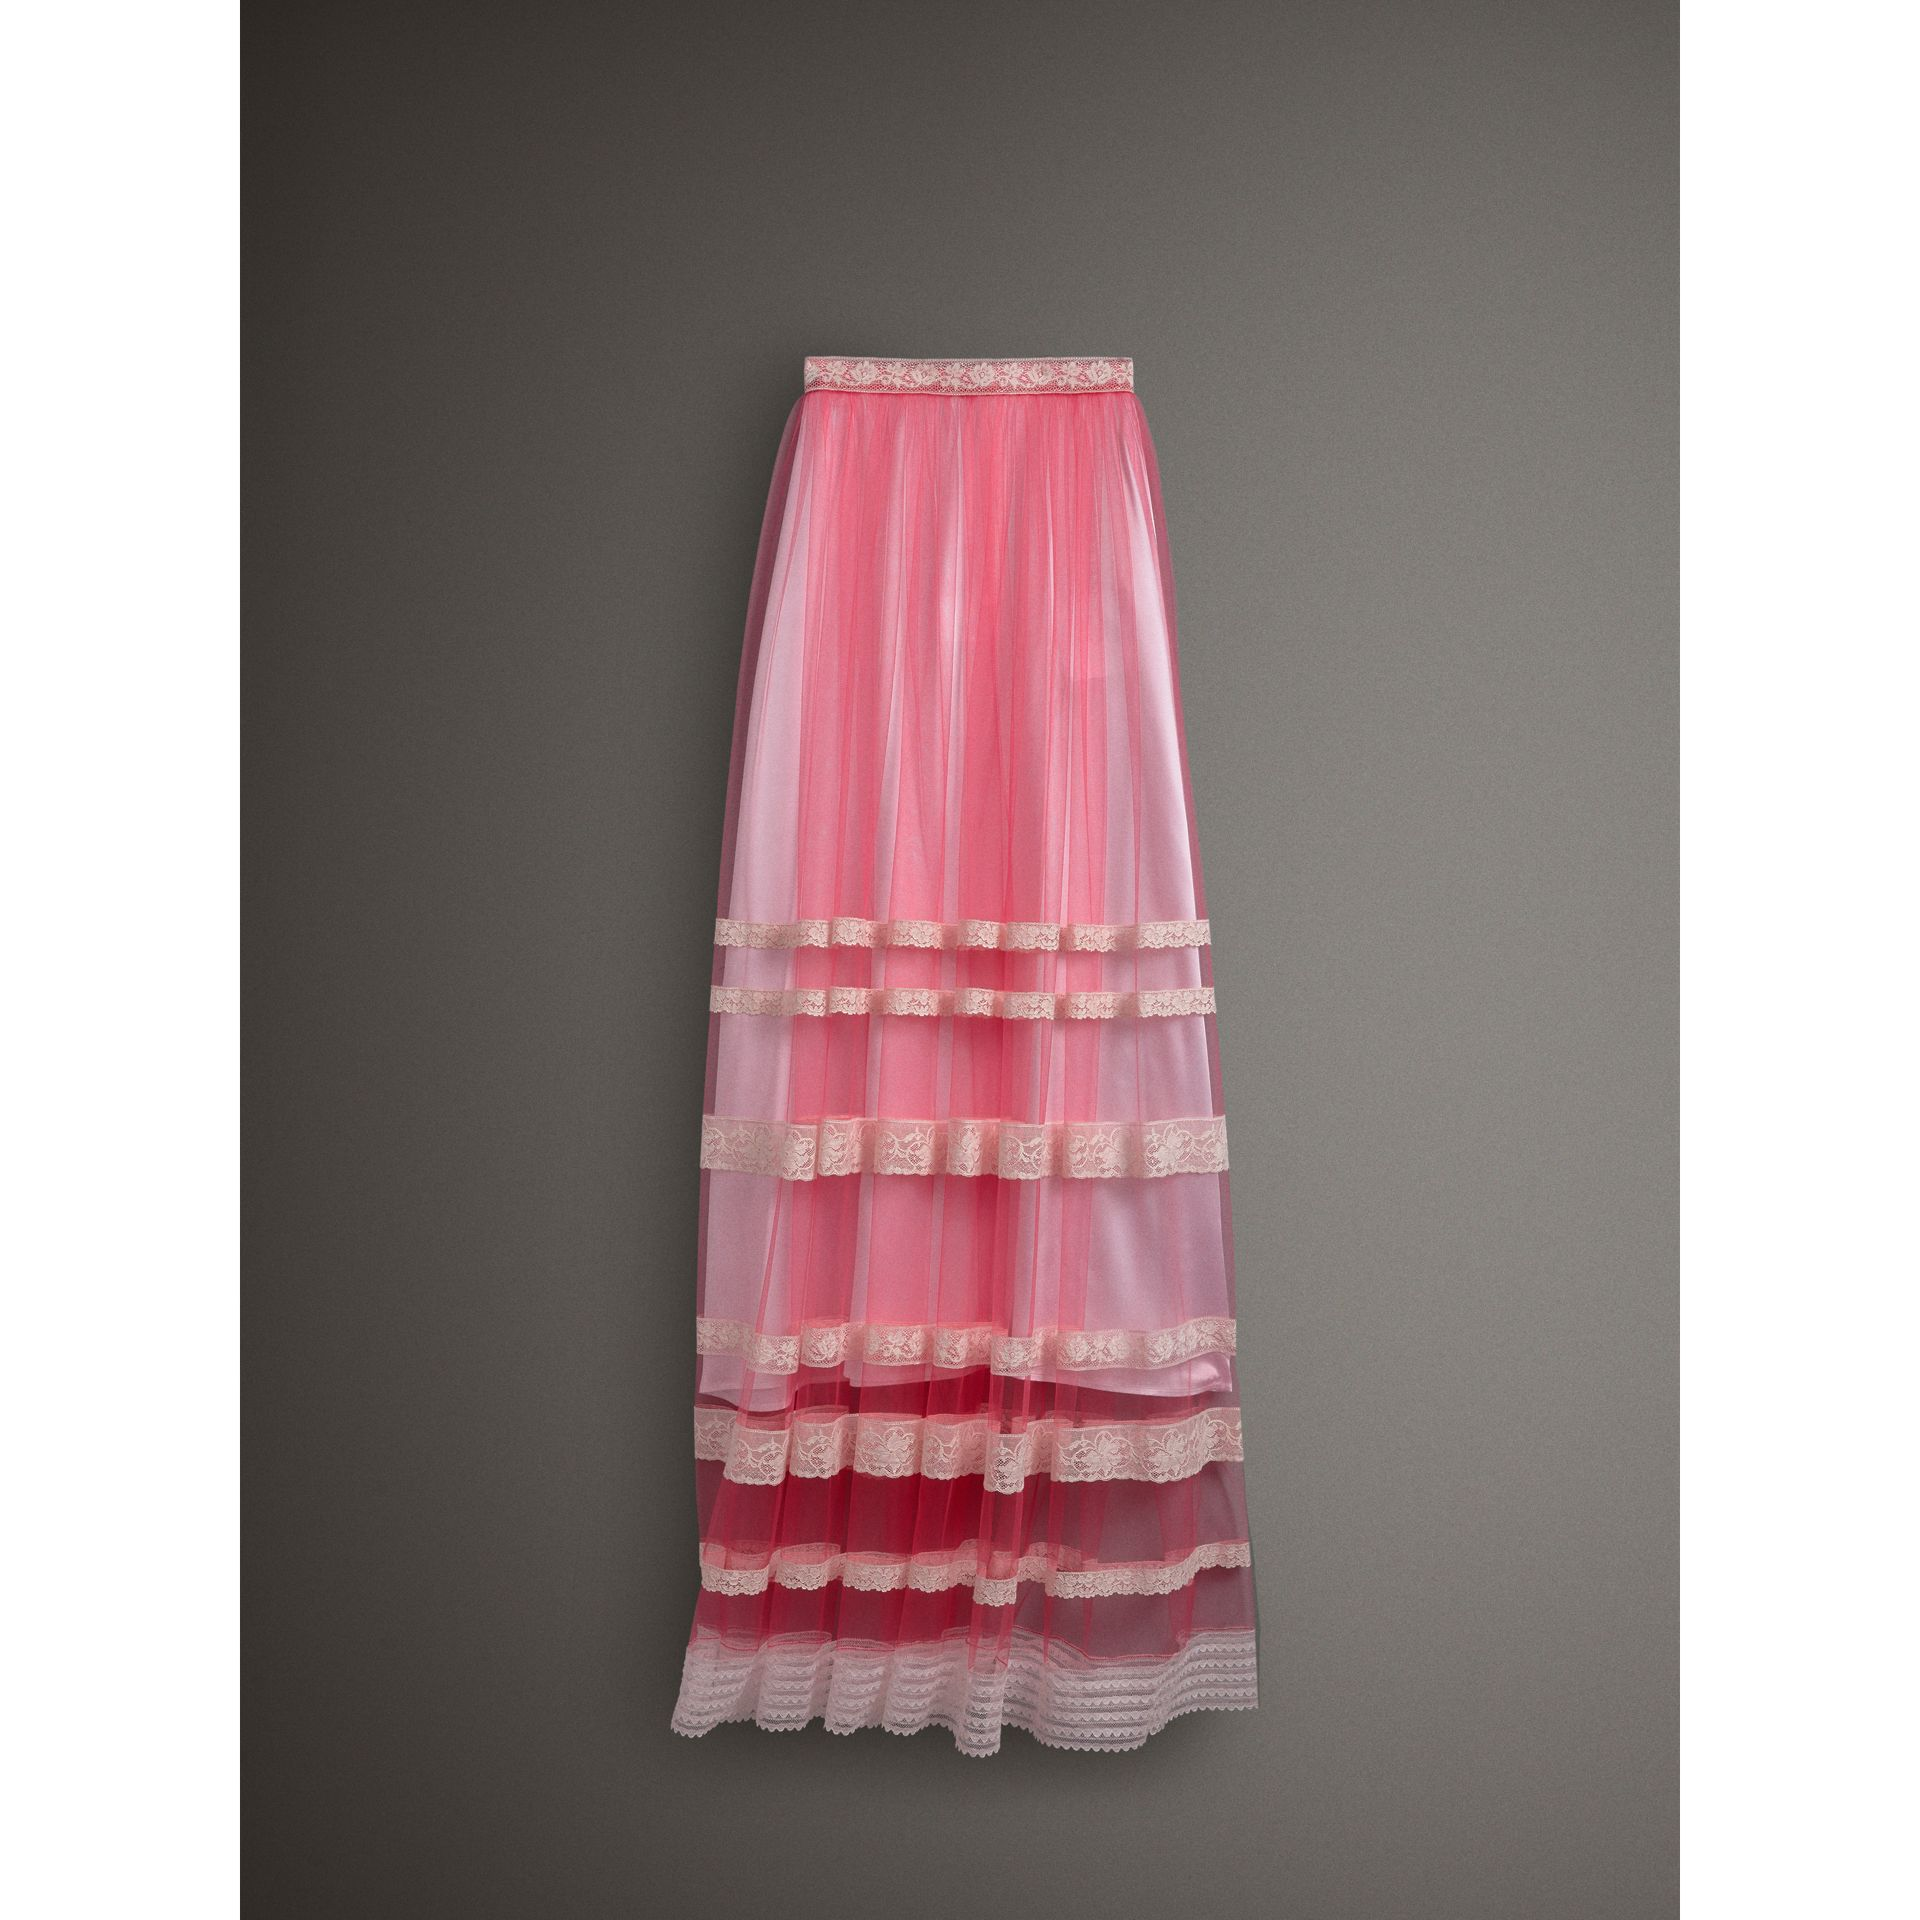 Floor-length English Lace Trim Tulle Skirt in Bright Pink - Women | Burberry United Kingdom - gallery image 3